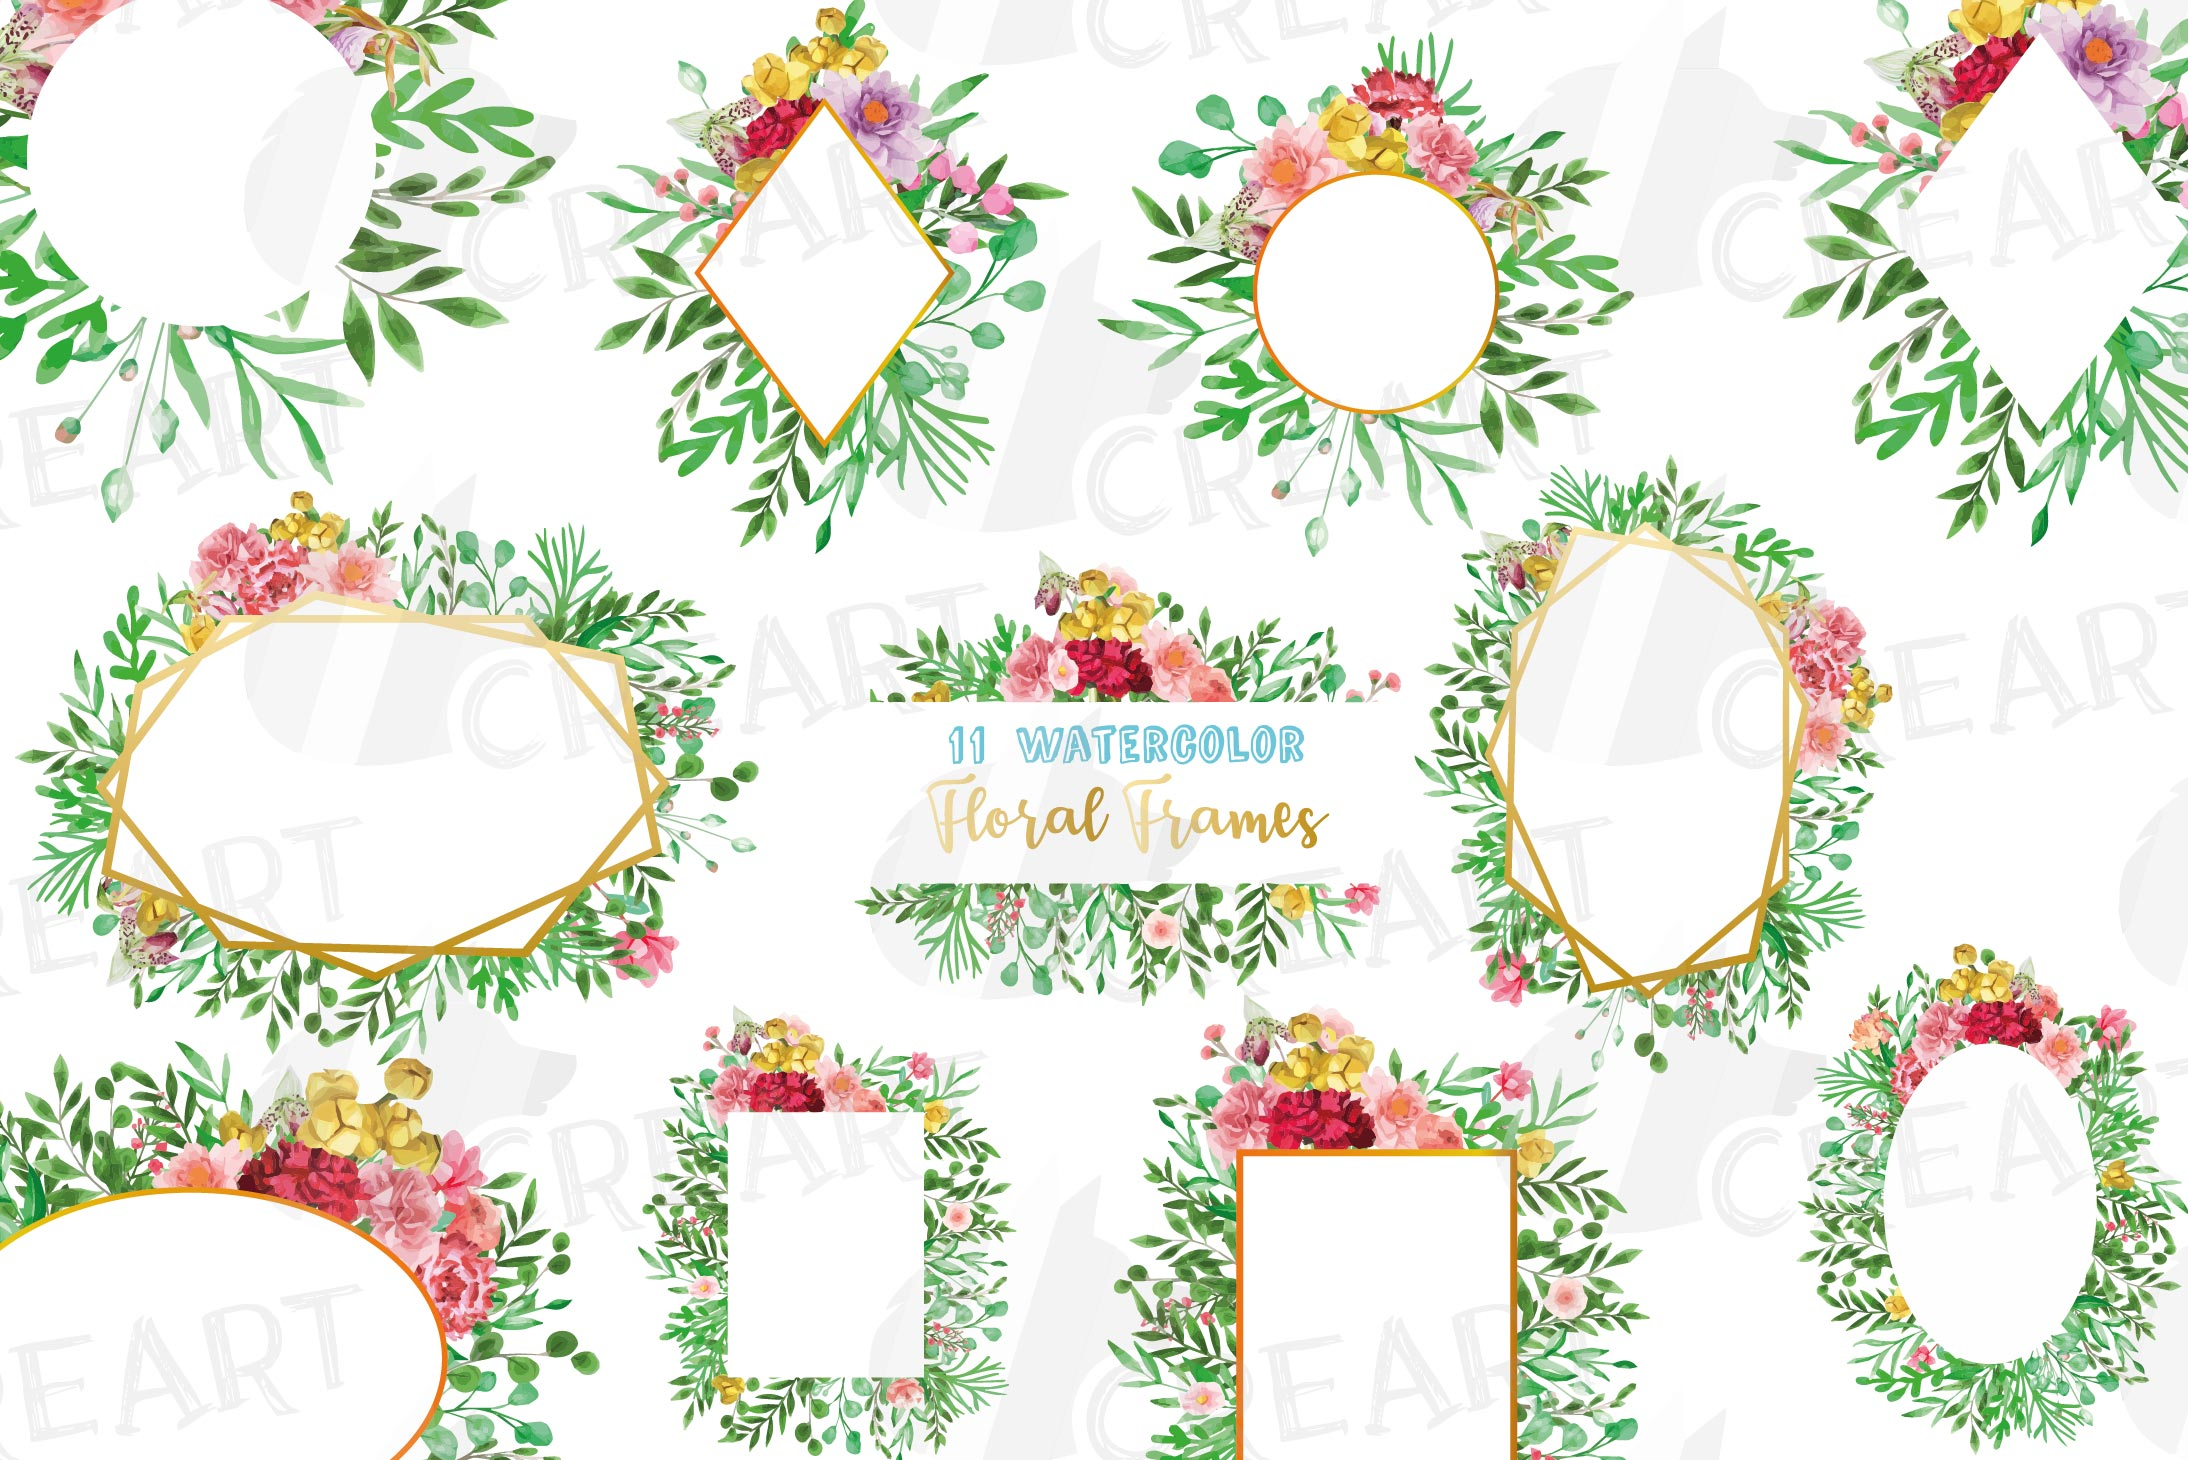 Watercolor floral floral frames and borders clip art pack example image 1